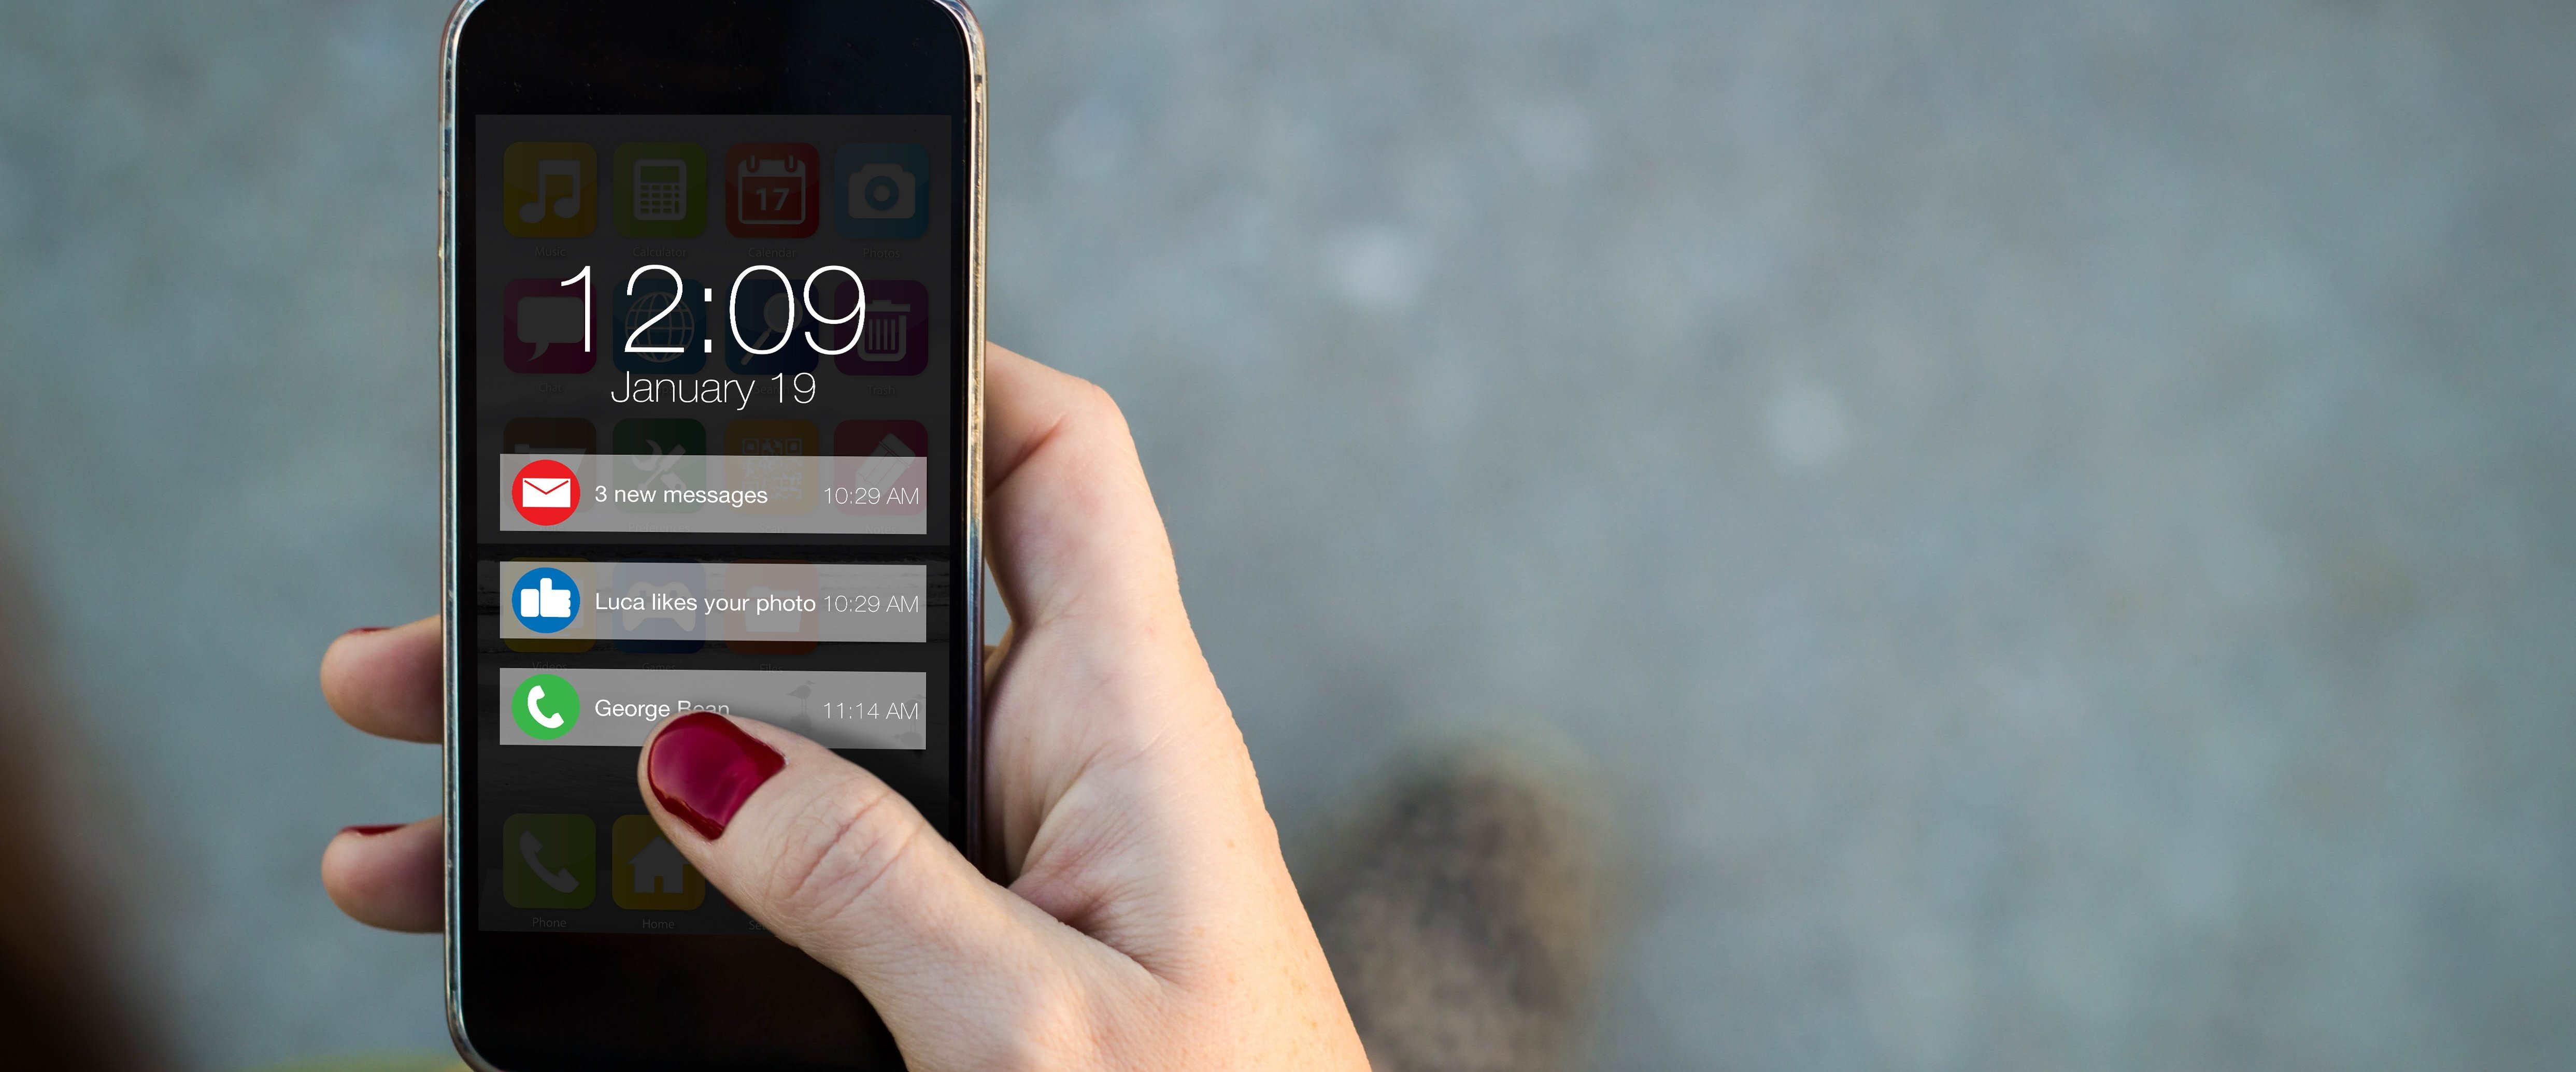 7 Types of Push Notifications Users Actually Enjoy